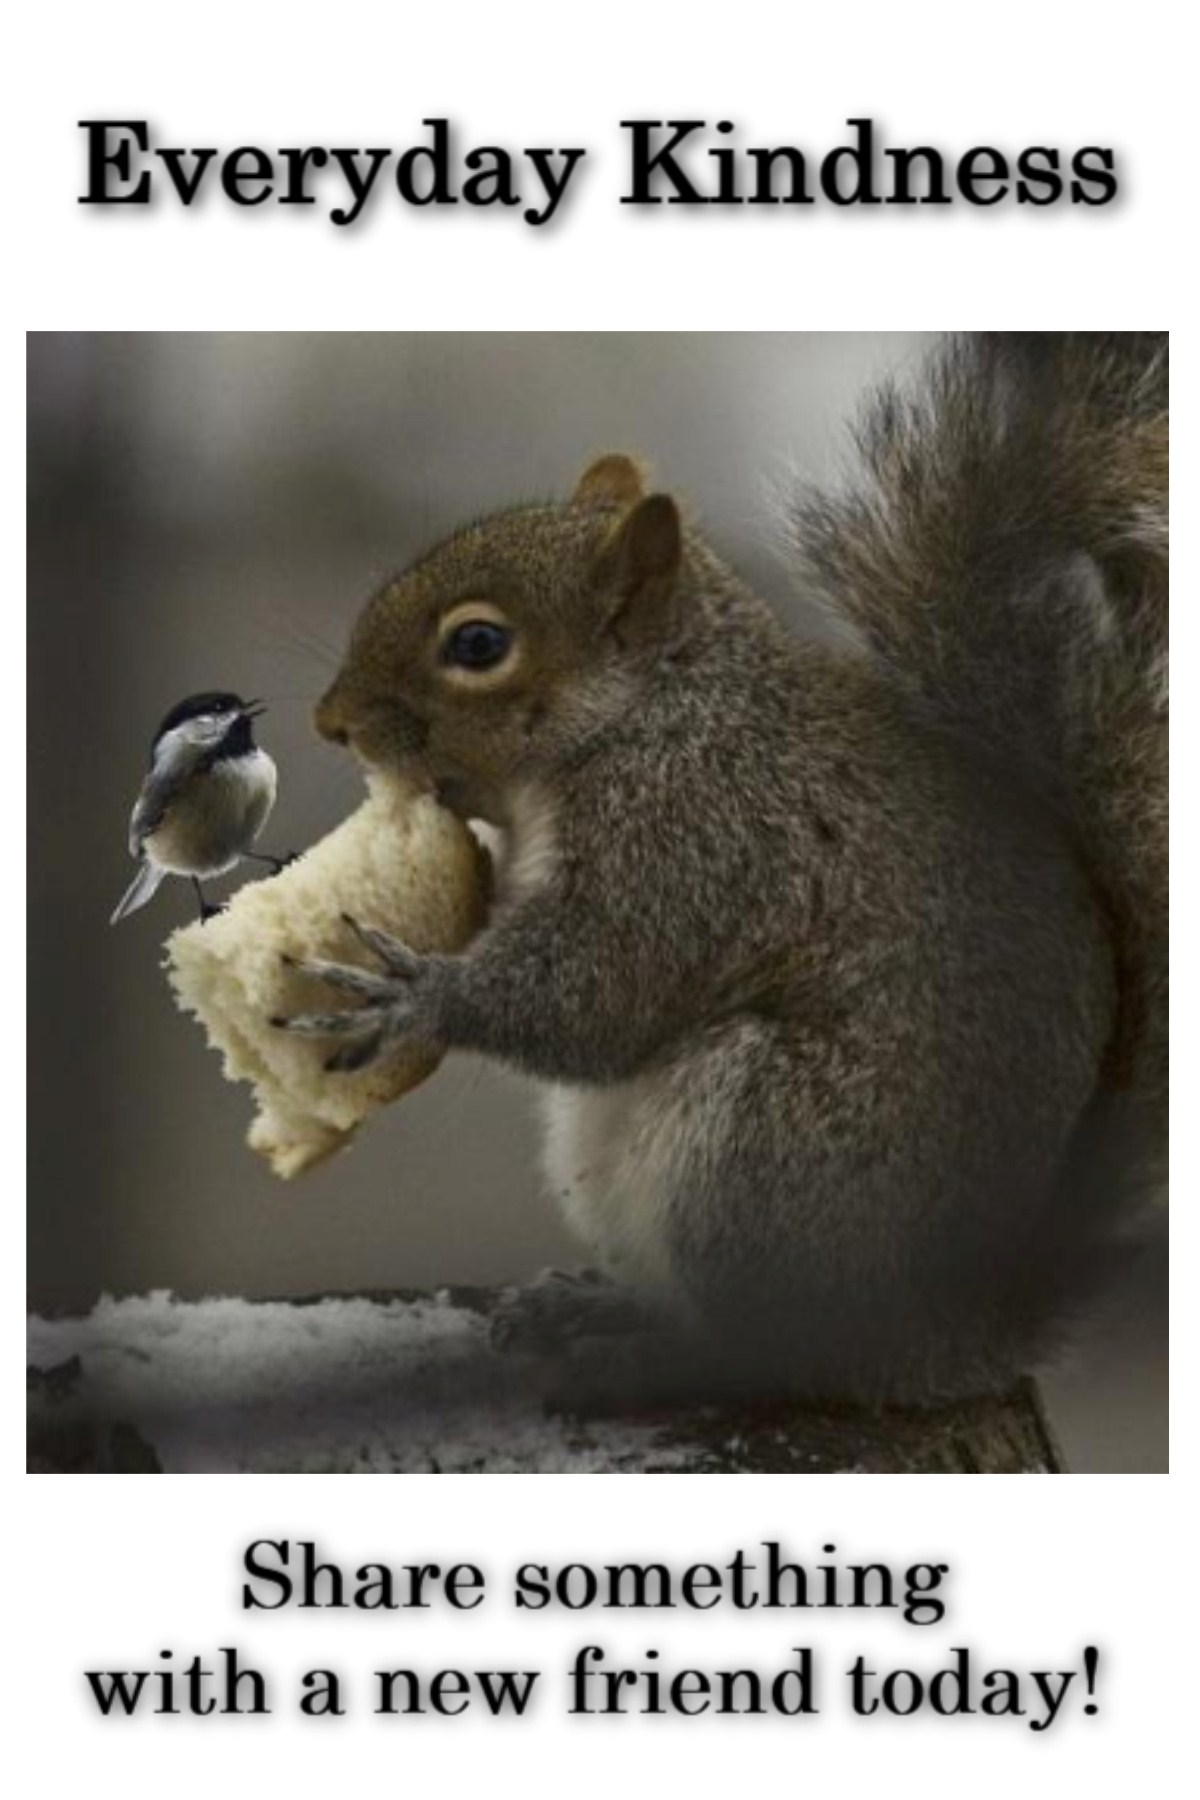 kindness between squirrel & bird